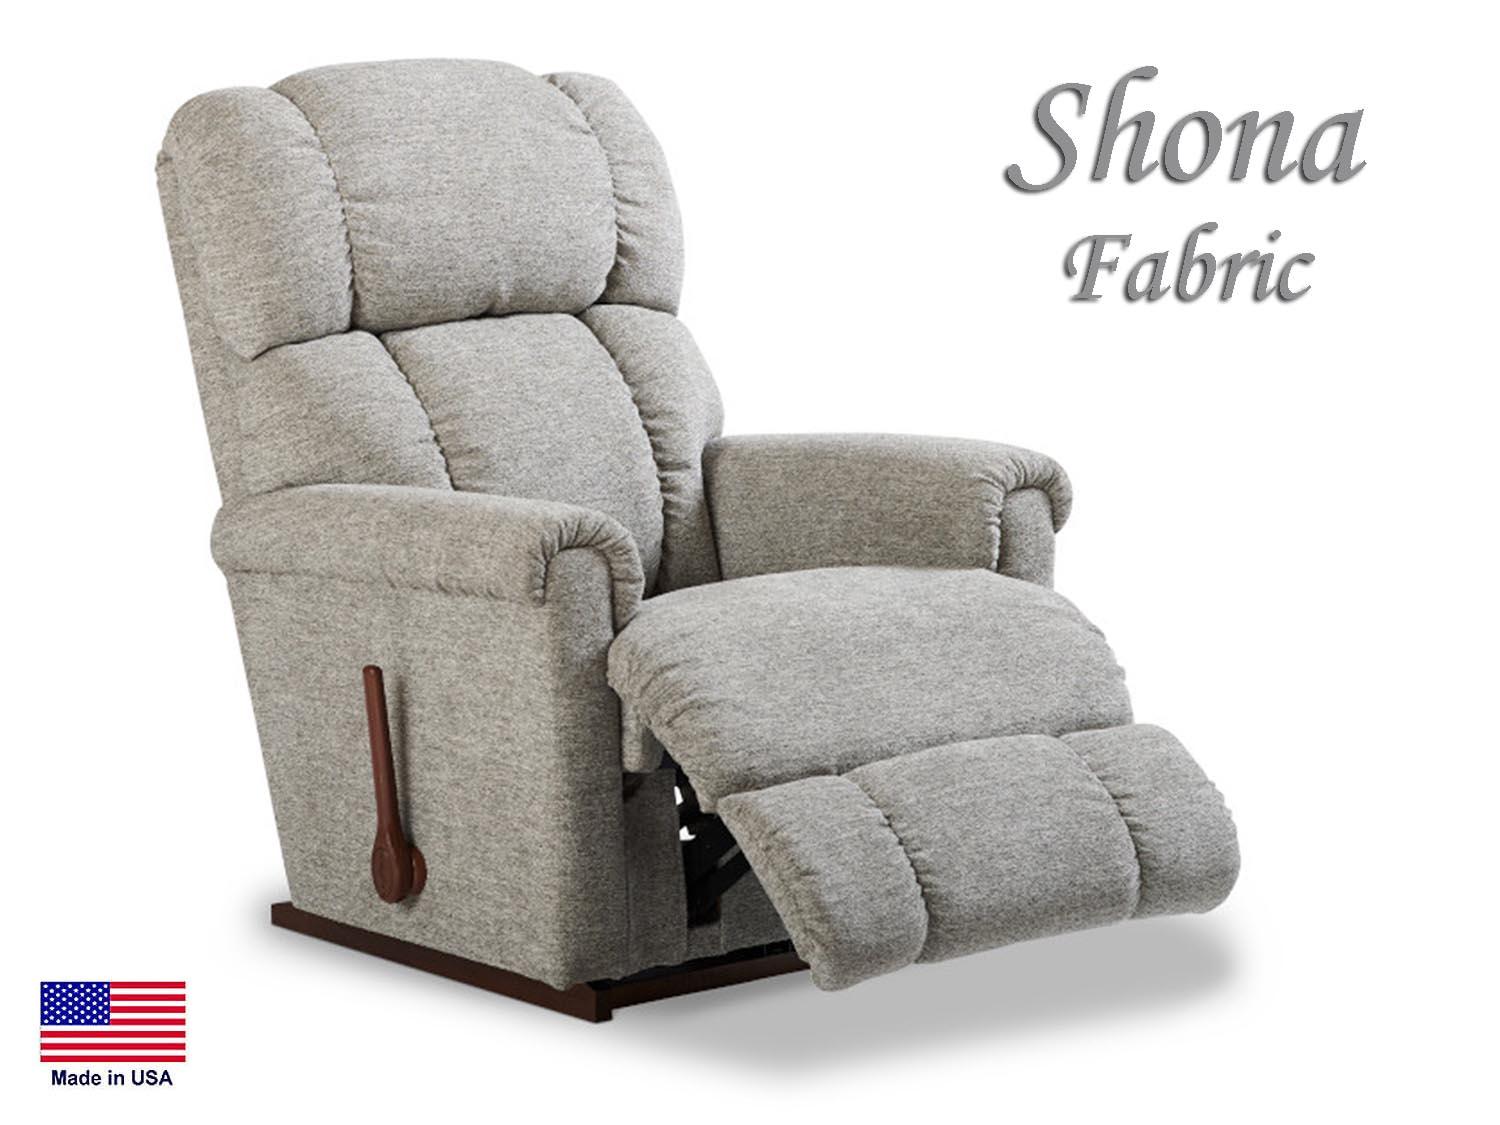 Barbo's Furniture, Shona, fabric, Power, Rocker, Wall, Space Saver, Recliner, Swivel, Glider, Power, Living Room, Family Room, Den, Reclining, Sofa, Loveseat, Console, Transitional, Casual, Coastal, Cape Cod, Contemporary